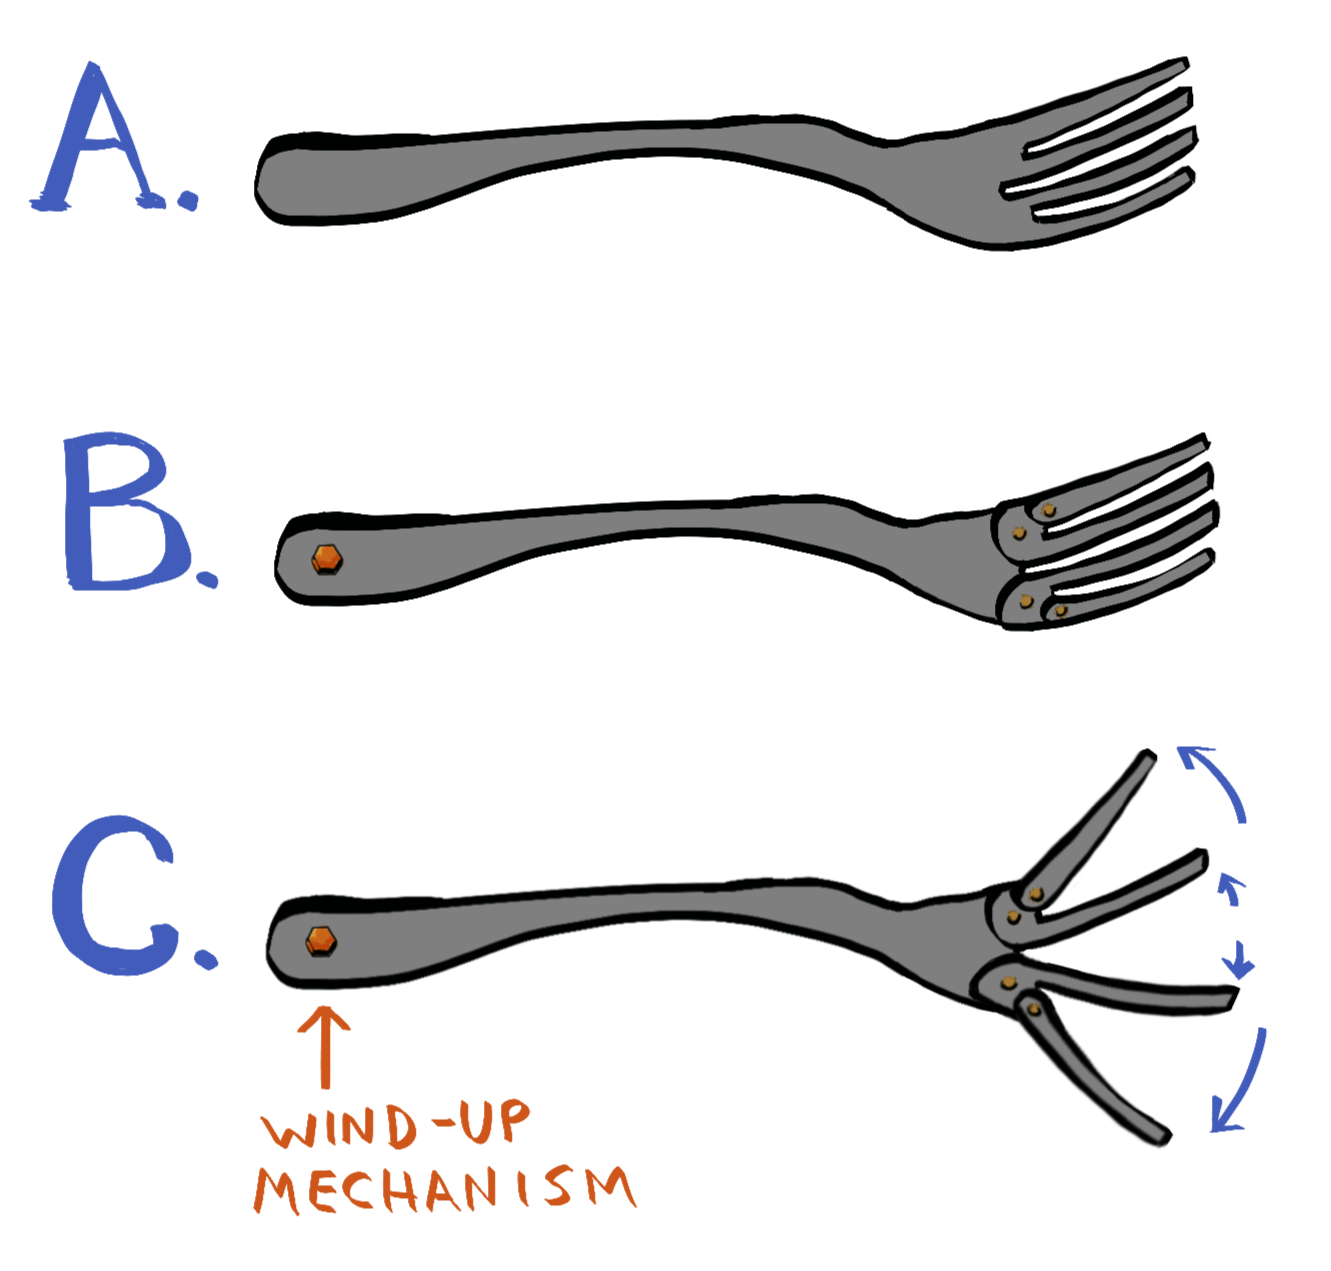 1-difficult-fork.png